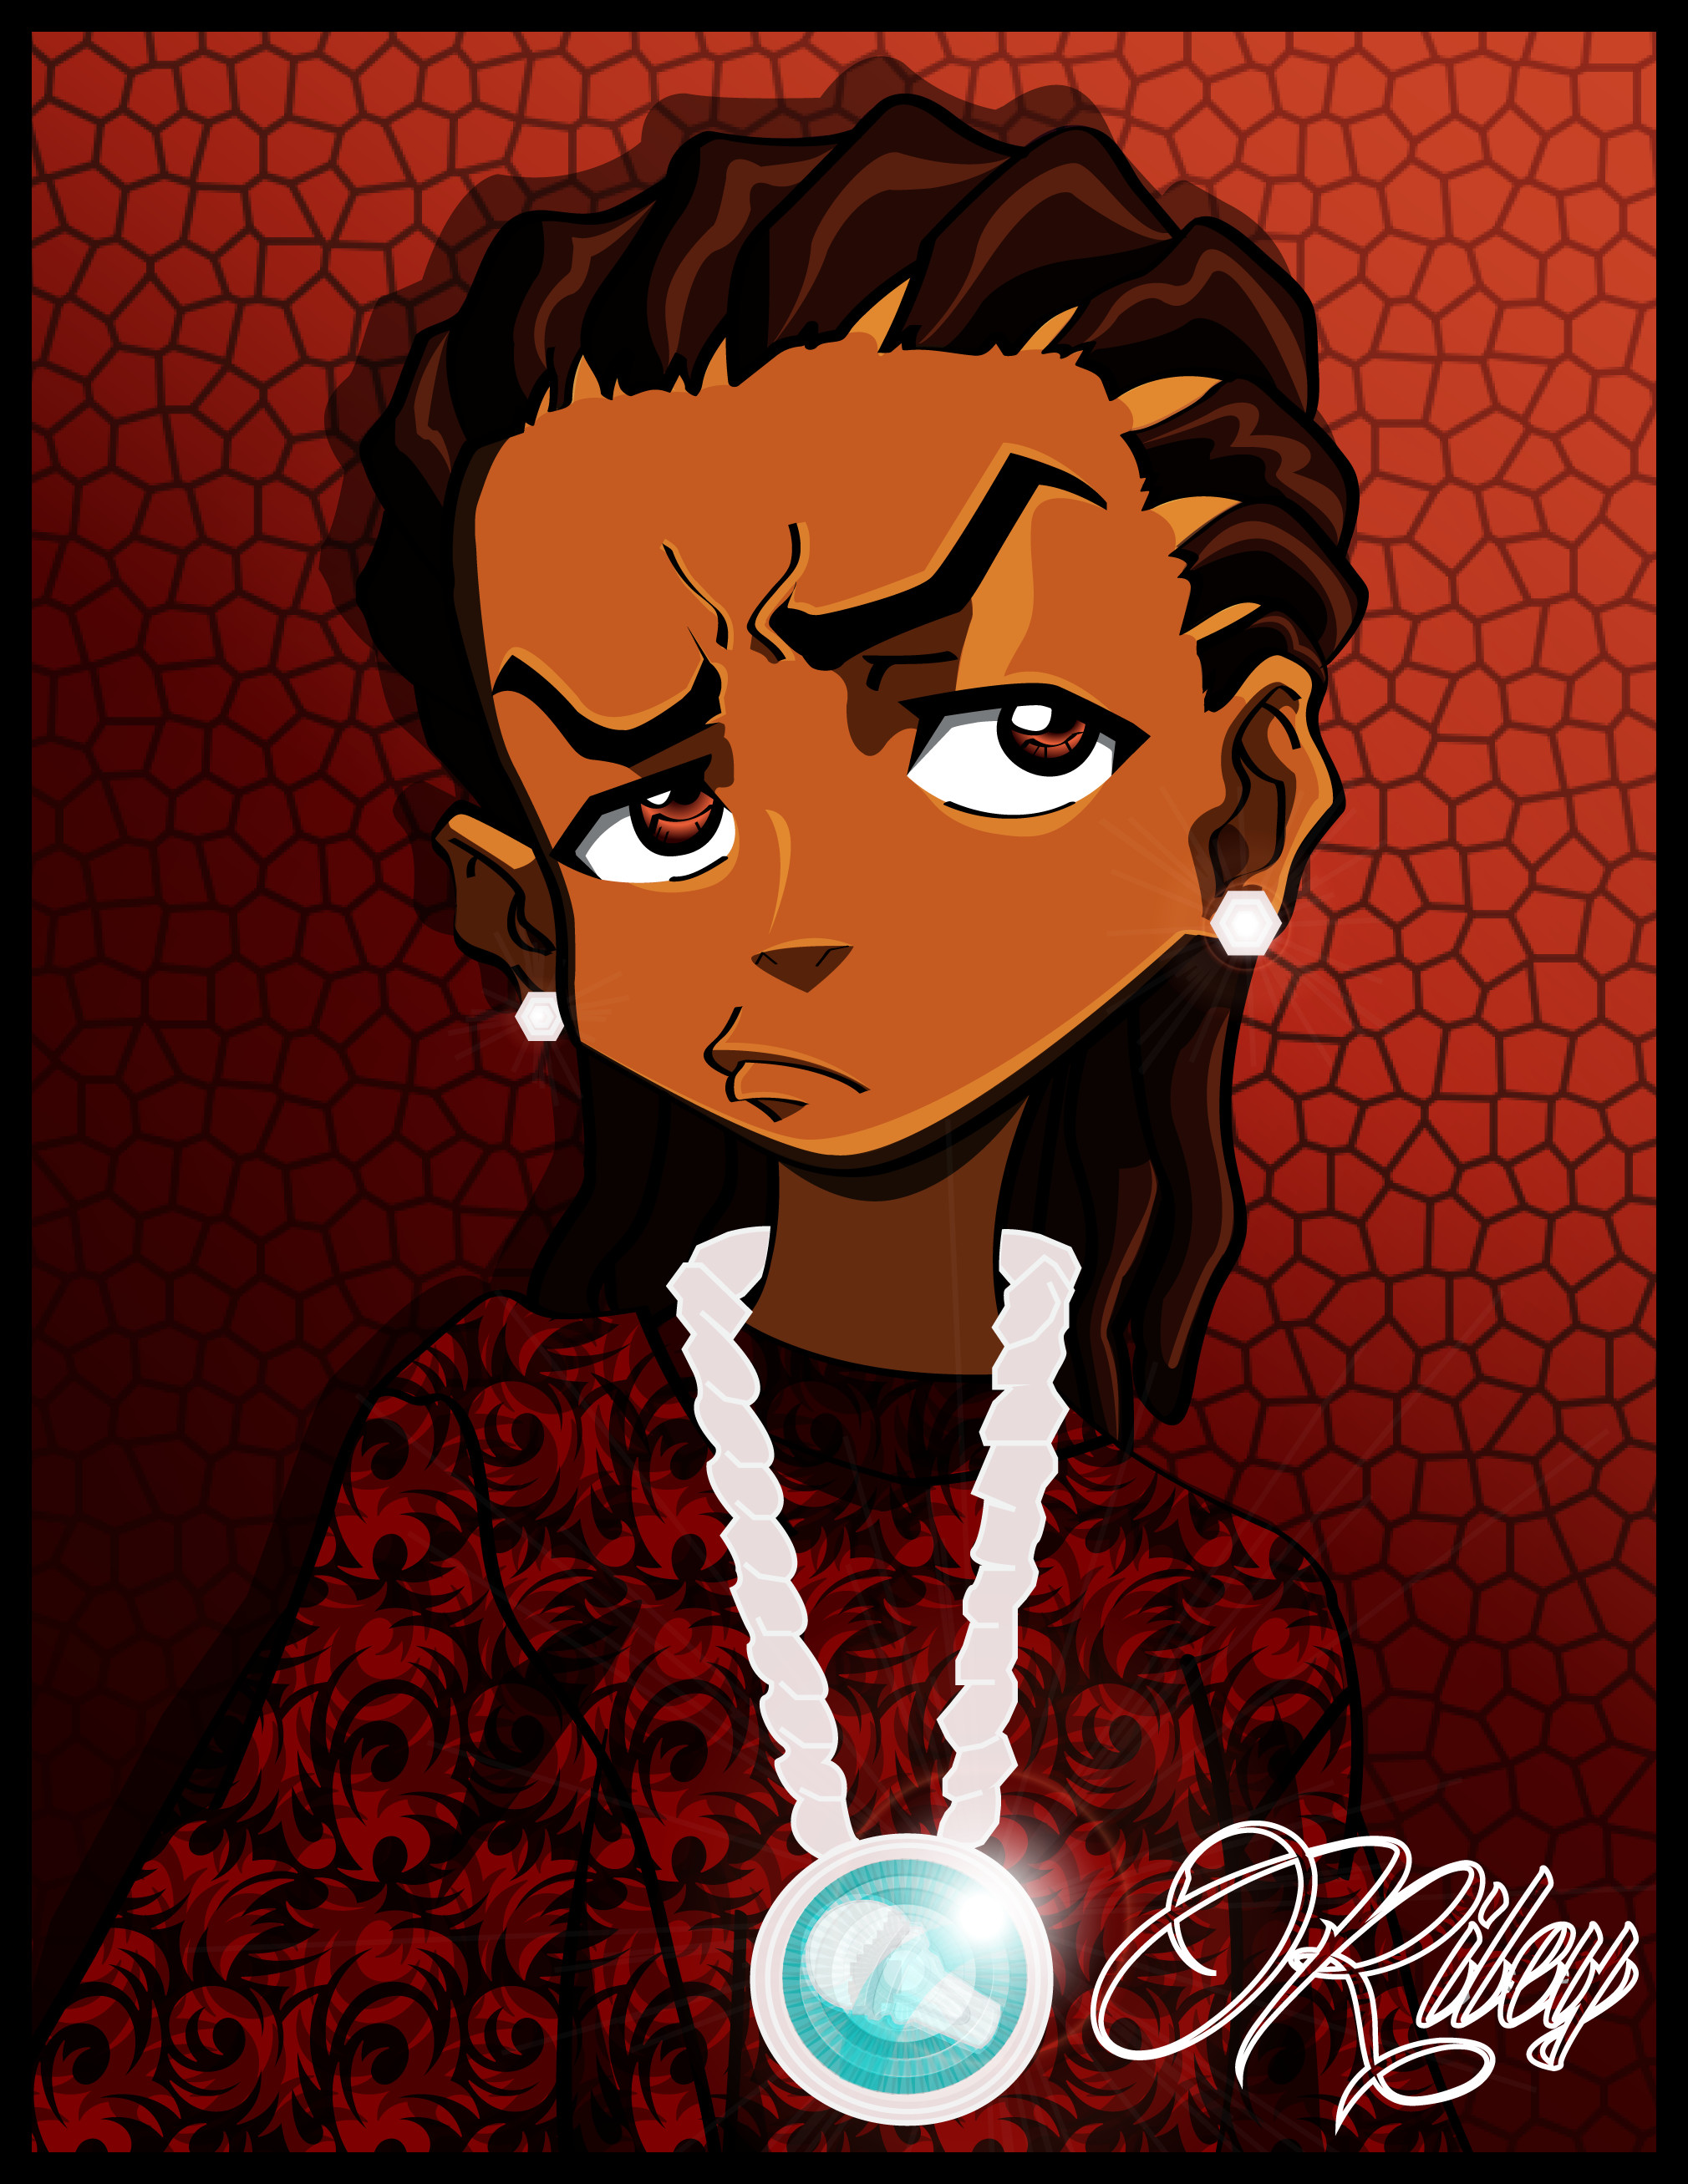 The Boondocks Riley Gangster Riley freeman with his lethal